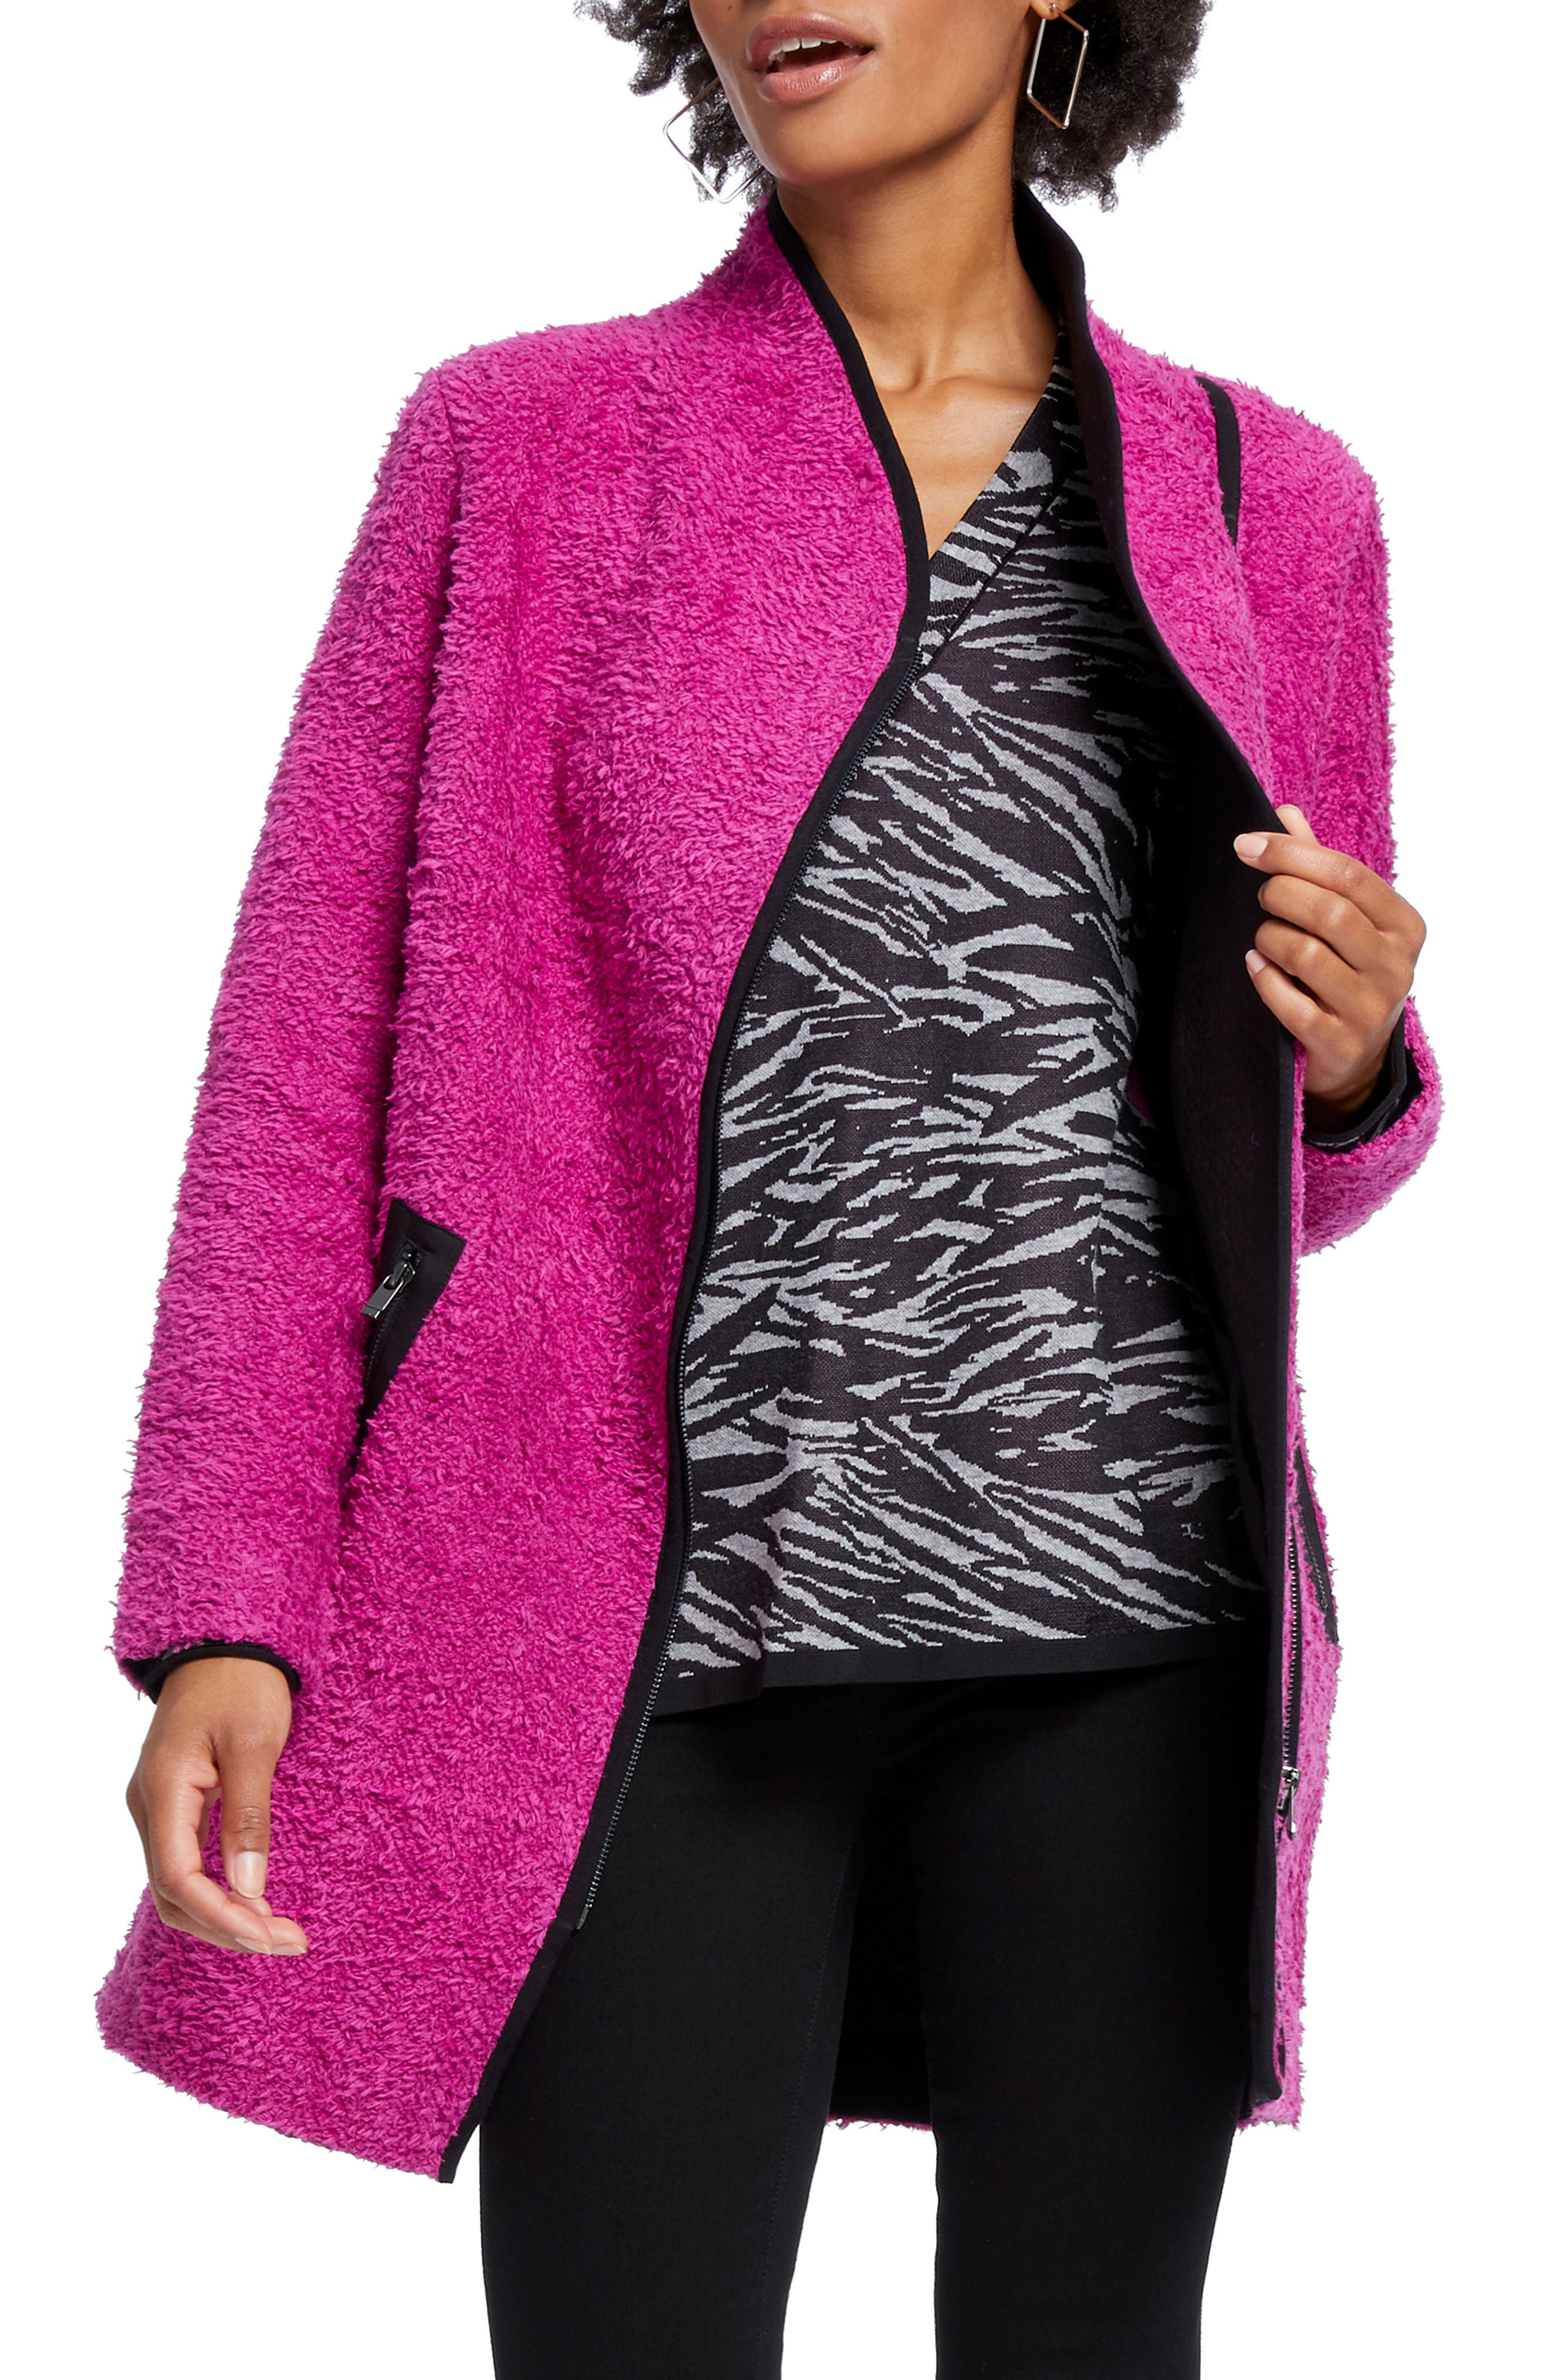 A scrumptious textured coat, outlined with contrast details, is ready to help you challenge the dreary days in your own personal pop of color. Style Name: Nic+Zoe Pretty In Pink Fuzzy Cotton Blend Coat. Style Number: 5900353. Available in stores.